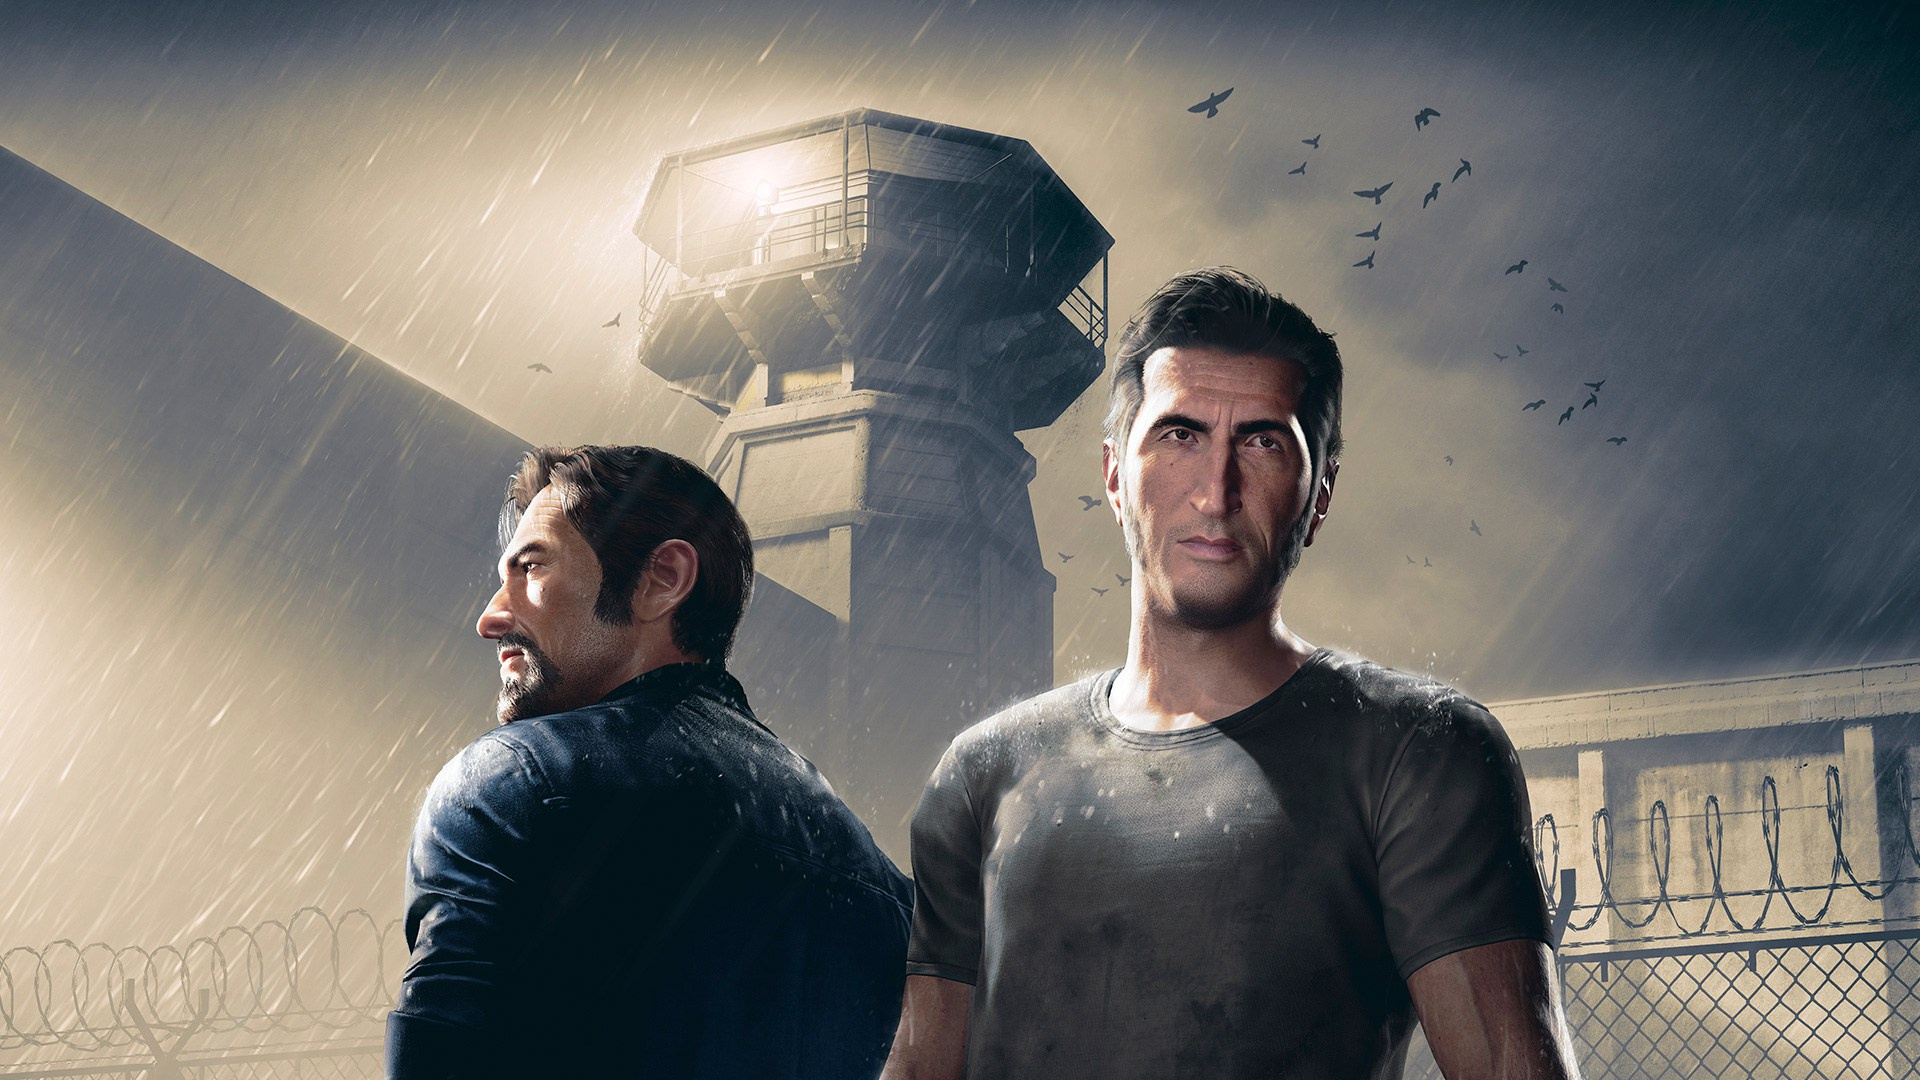 Unique Co-Op Title A Way Out Has Already Sold 1 Million Copies